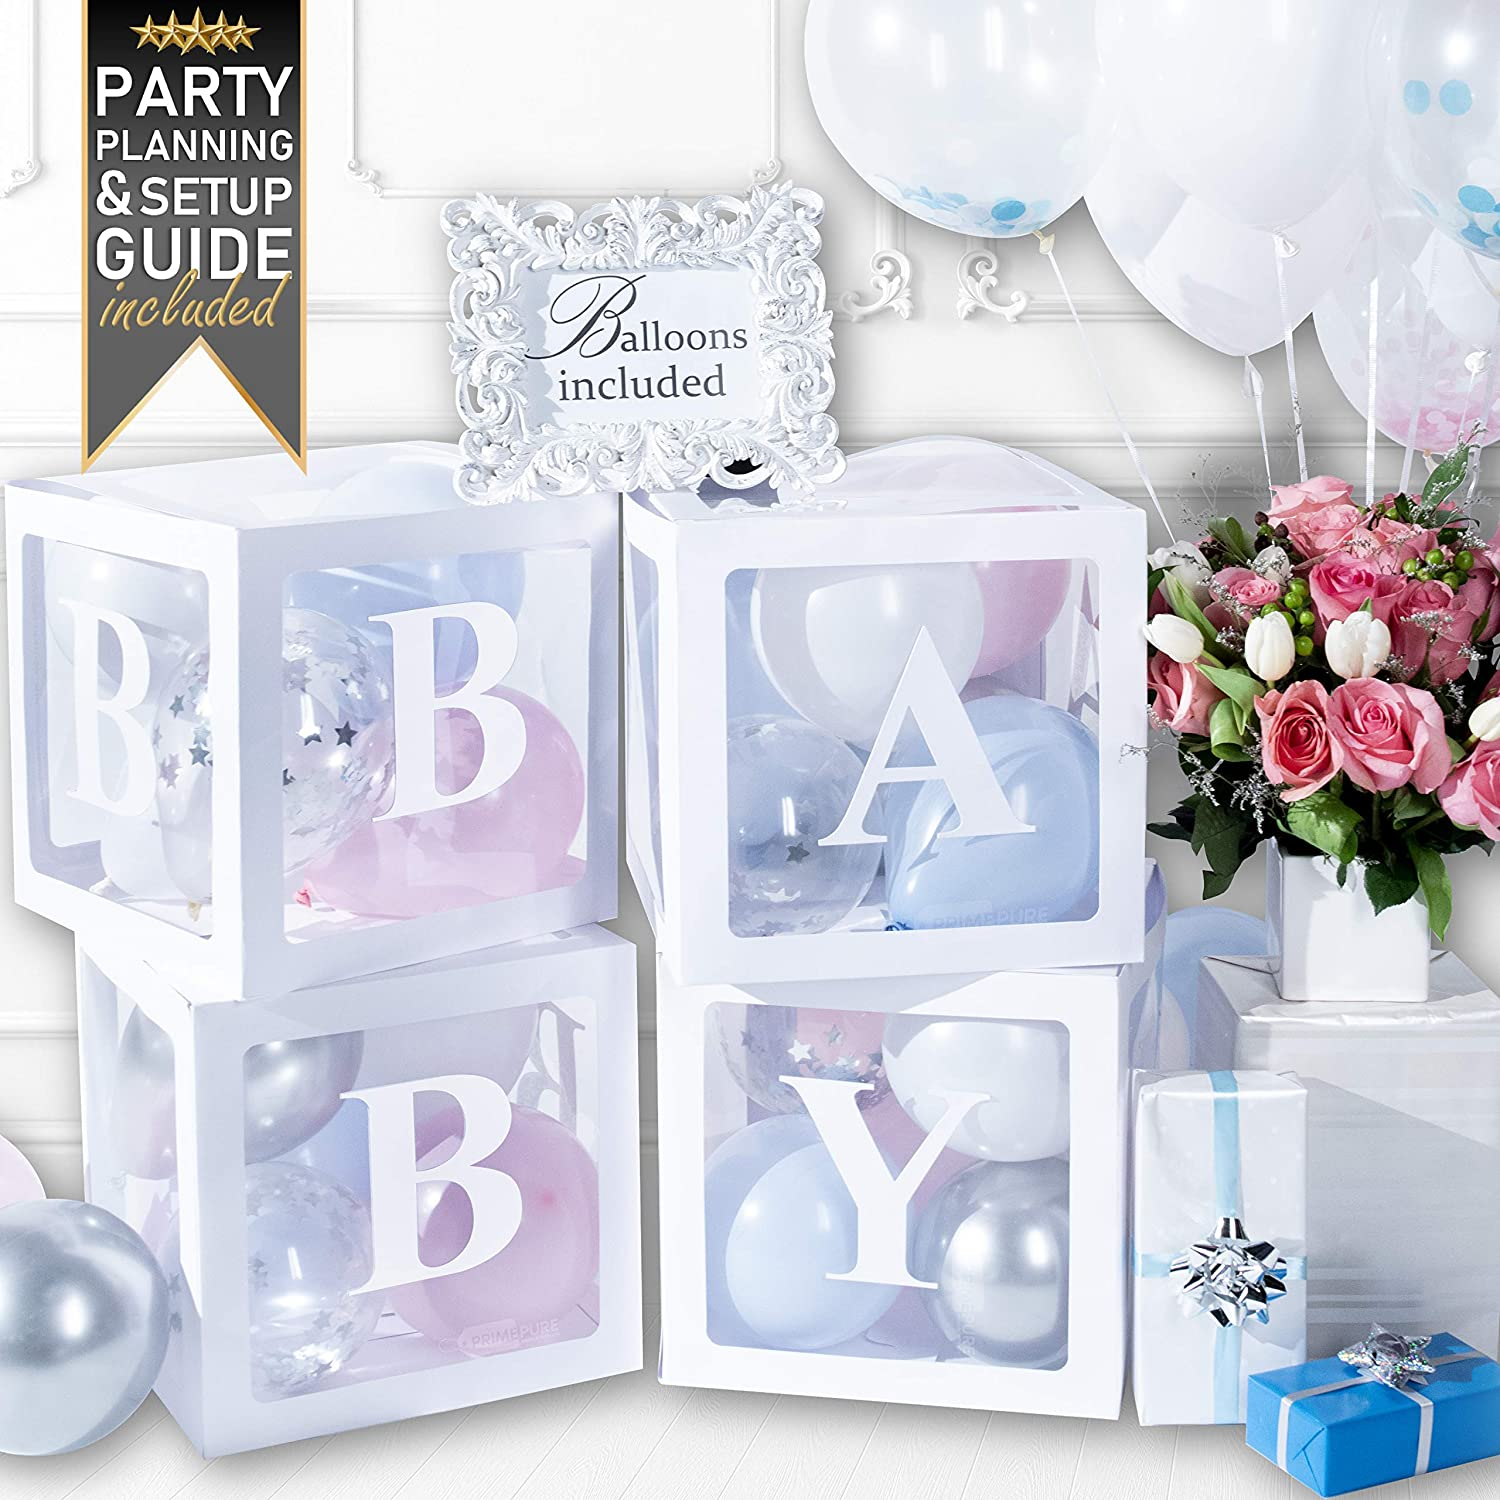 Amazon Com Baby Shower Decorations And Gender Reveal Party Supplies 52 Piece Premium Kit Pearl White Baby Balloon Letter Blocks For Girl And For Boy With Balloons Included Home Kitchen,Funny Animal Cartoon Pictures For Kids